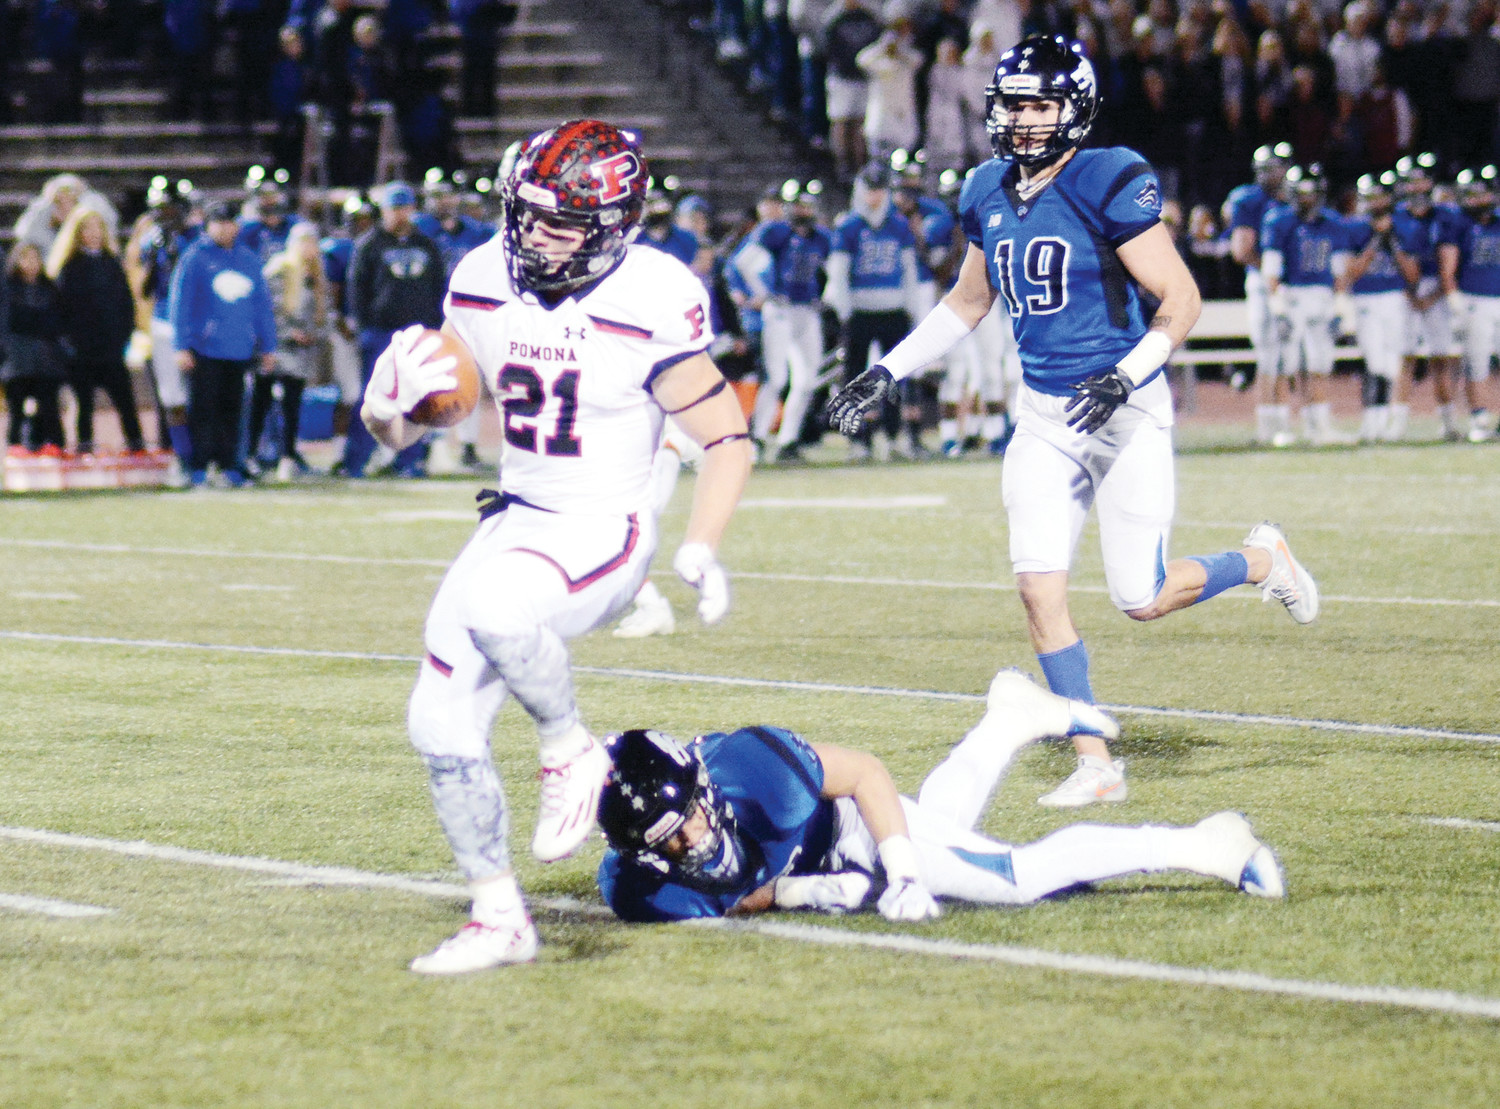 Pomona senior running back Max Borghi (21) breaks free during his first of three touchdown runs during the Class 5A football state semifinal against Grandview on Nov. 25 at Legacy Stadium in Aurora. Borghi finished the night with 18 carries for 211 yards in the Panthers 42-20 victory.